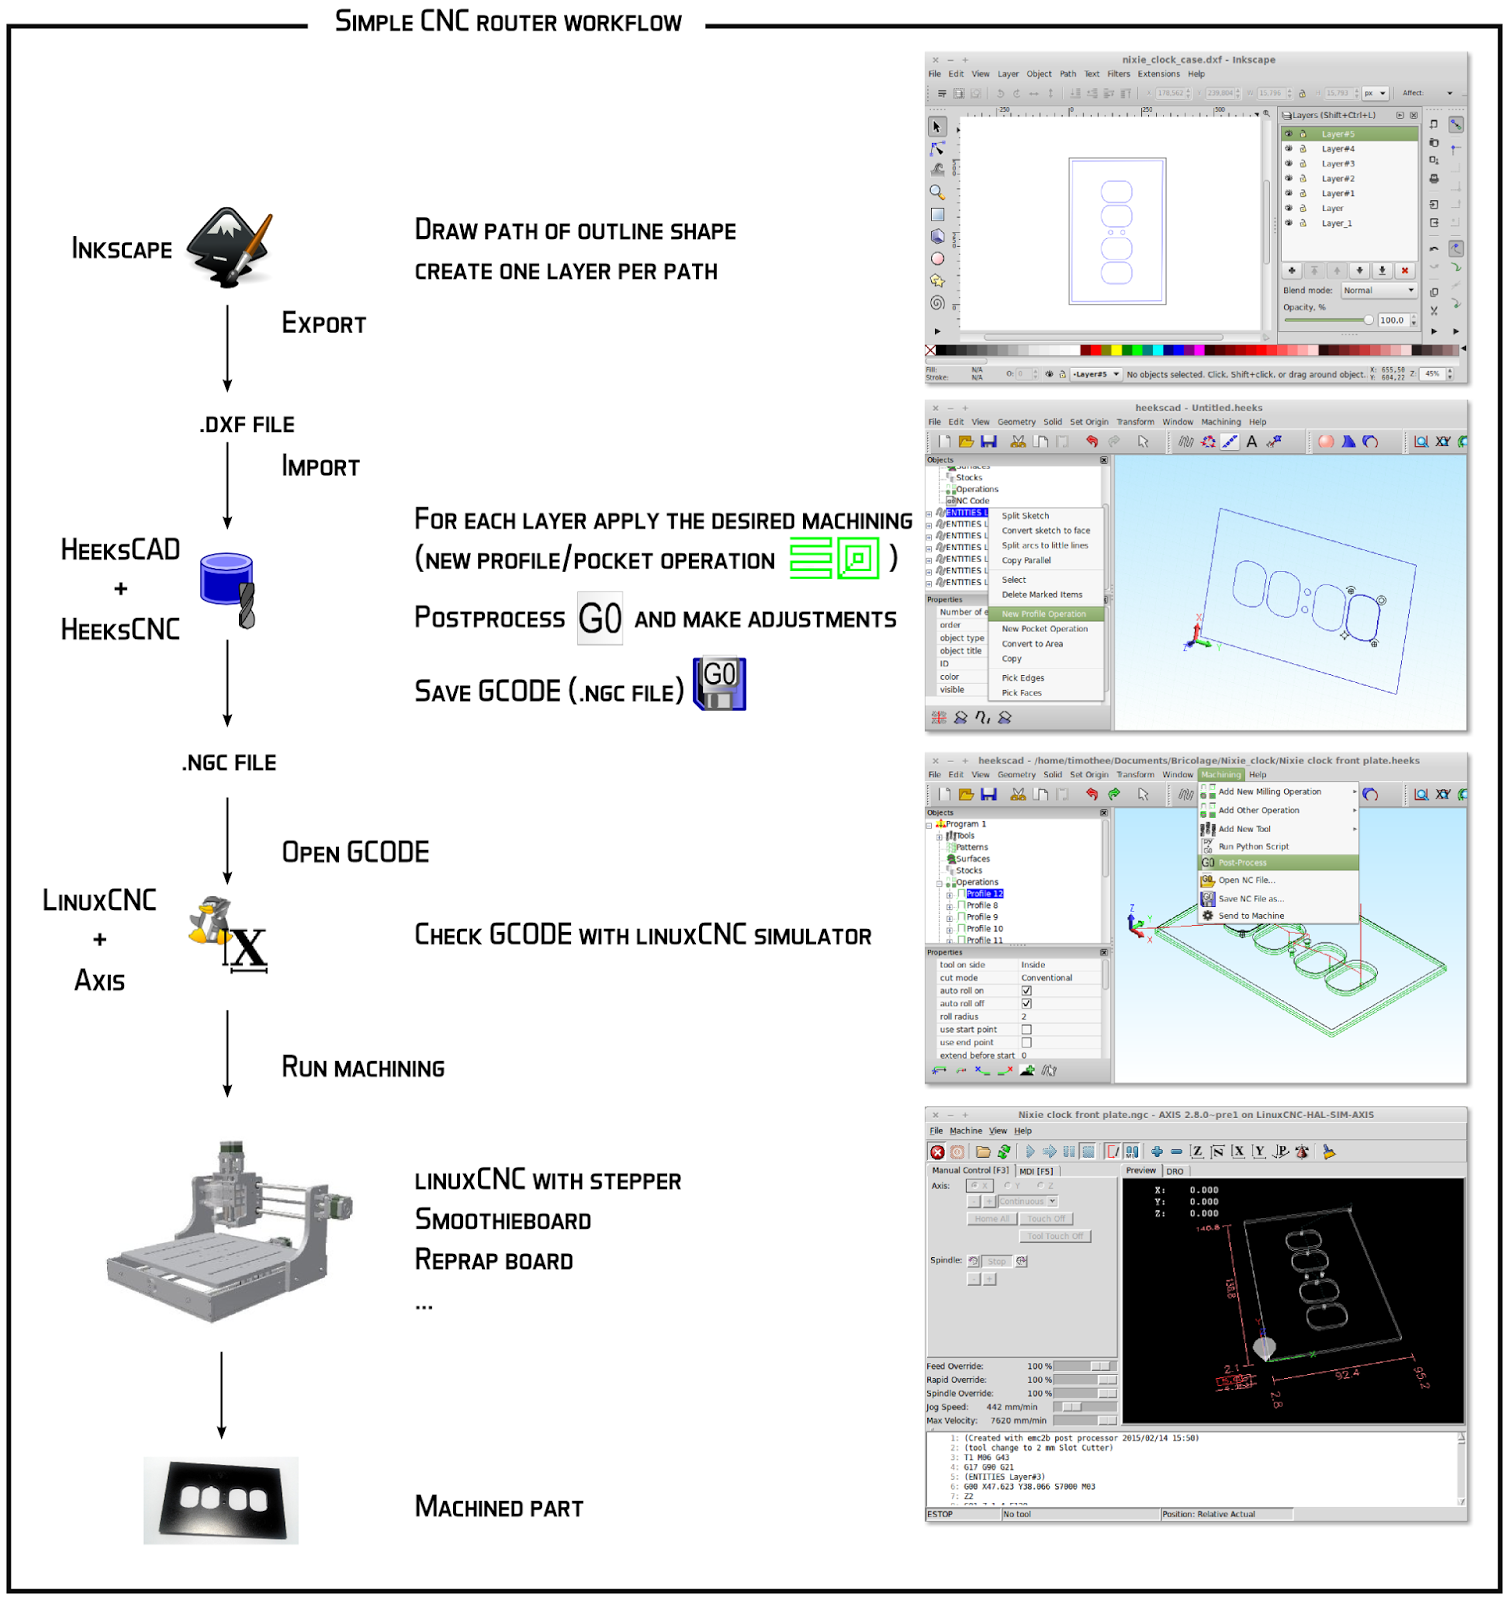 333 - How to?: Best CNC software TOP SW for cnc machine